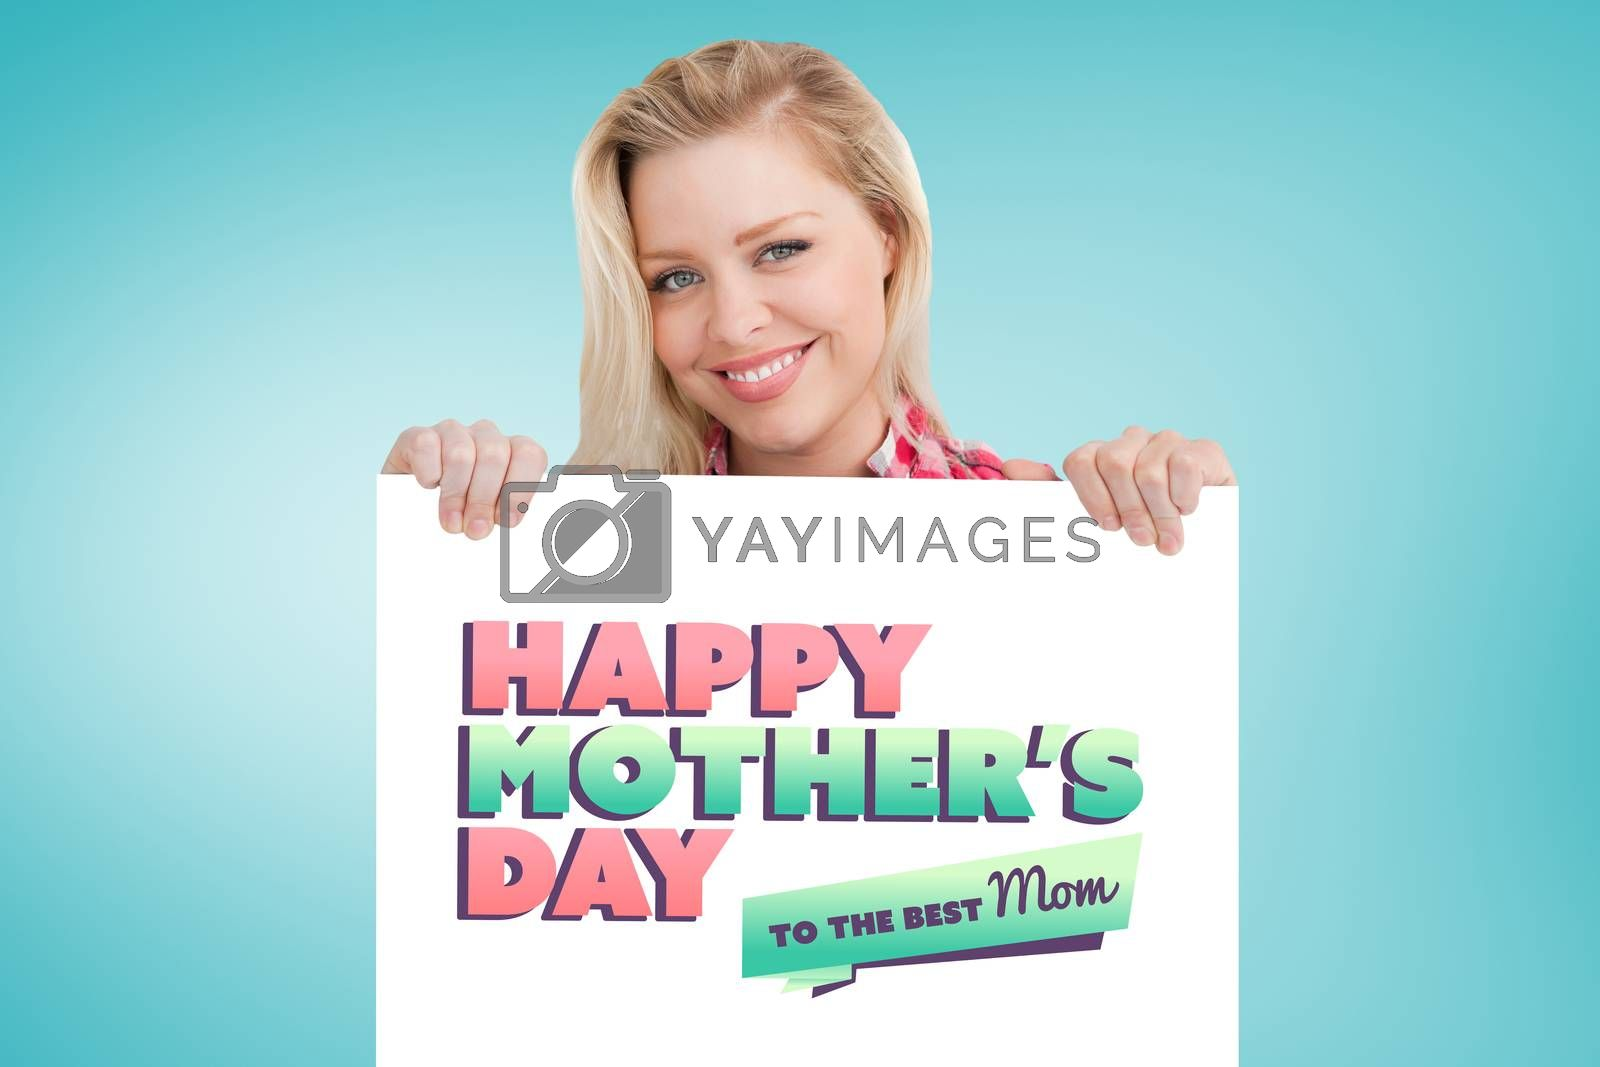 Woman beaming while holding a blank sign against blue vignette background